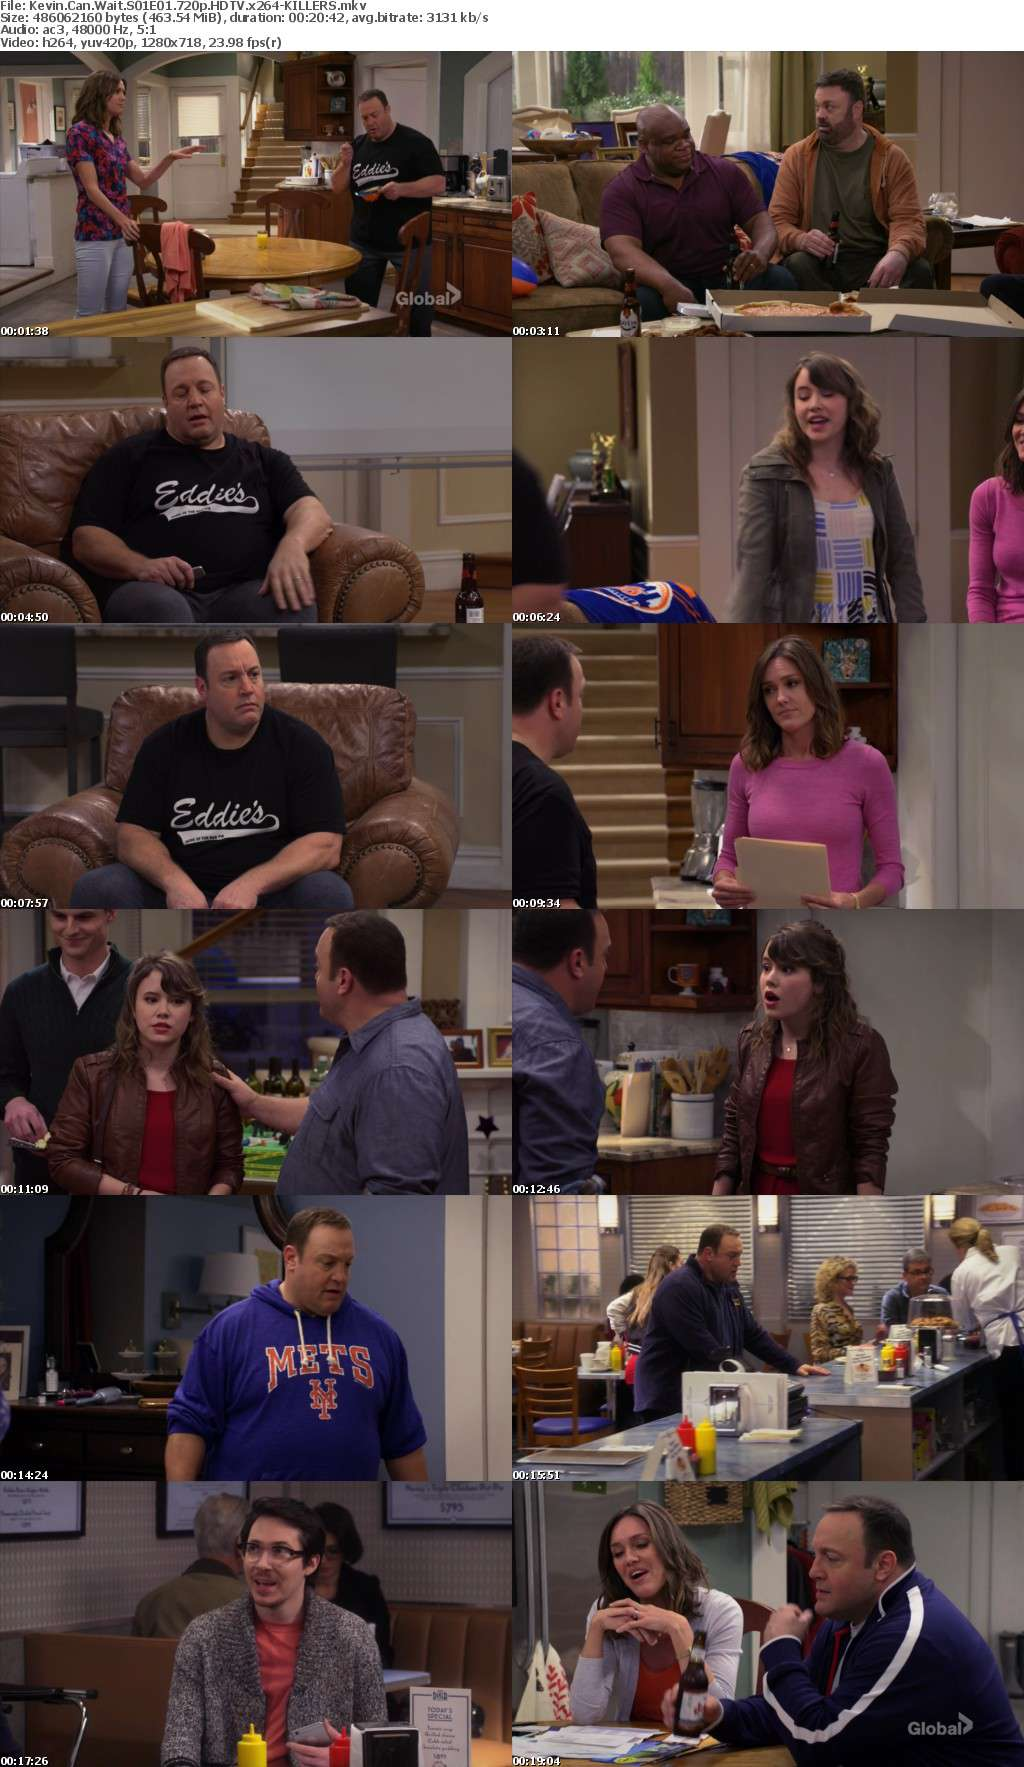 Kevin Can Wait S01E01 720p HDTV x264-KILLERS